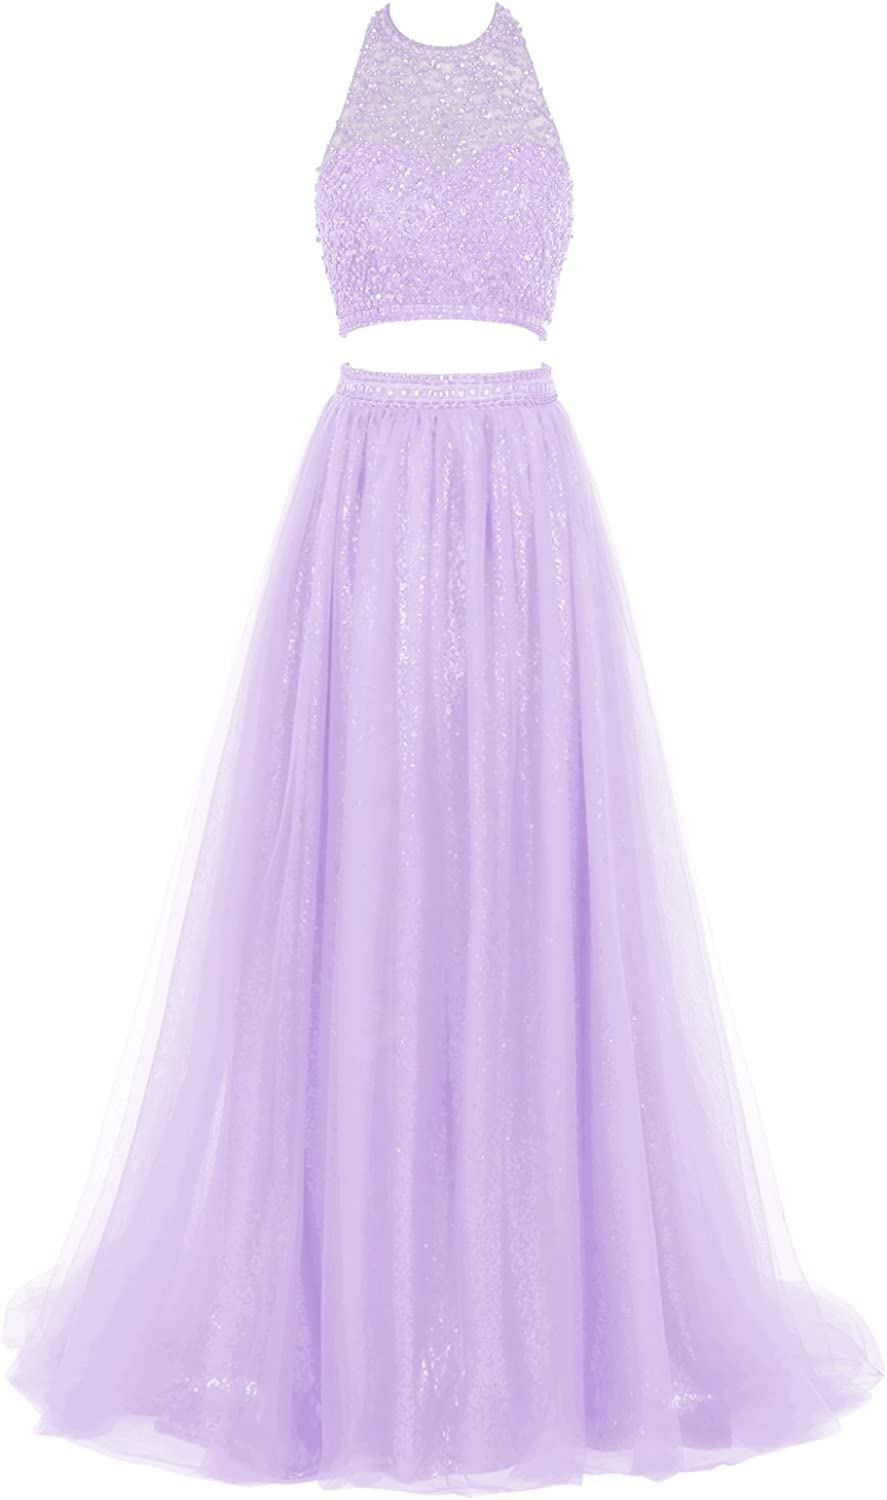 Bbonlinedress Long Tulle Prom Dress Two Piece Halter Beaded Sequins Party Gown